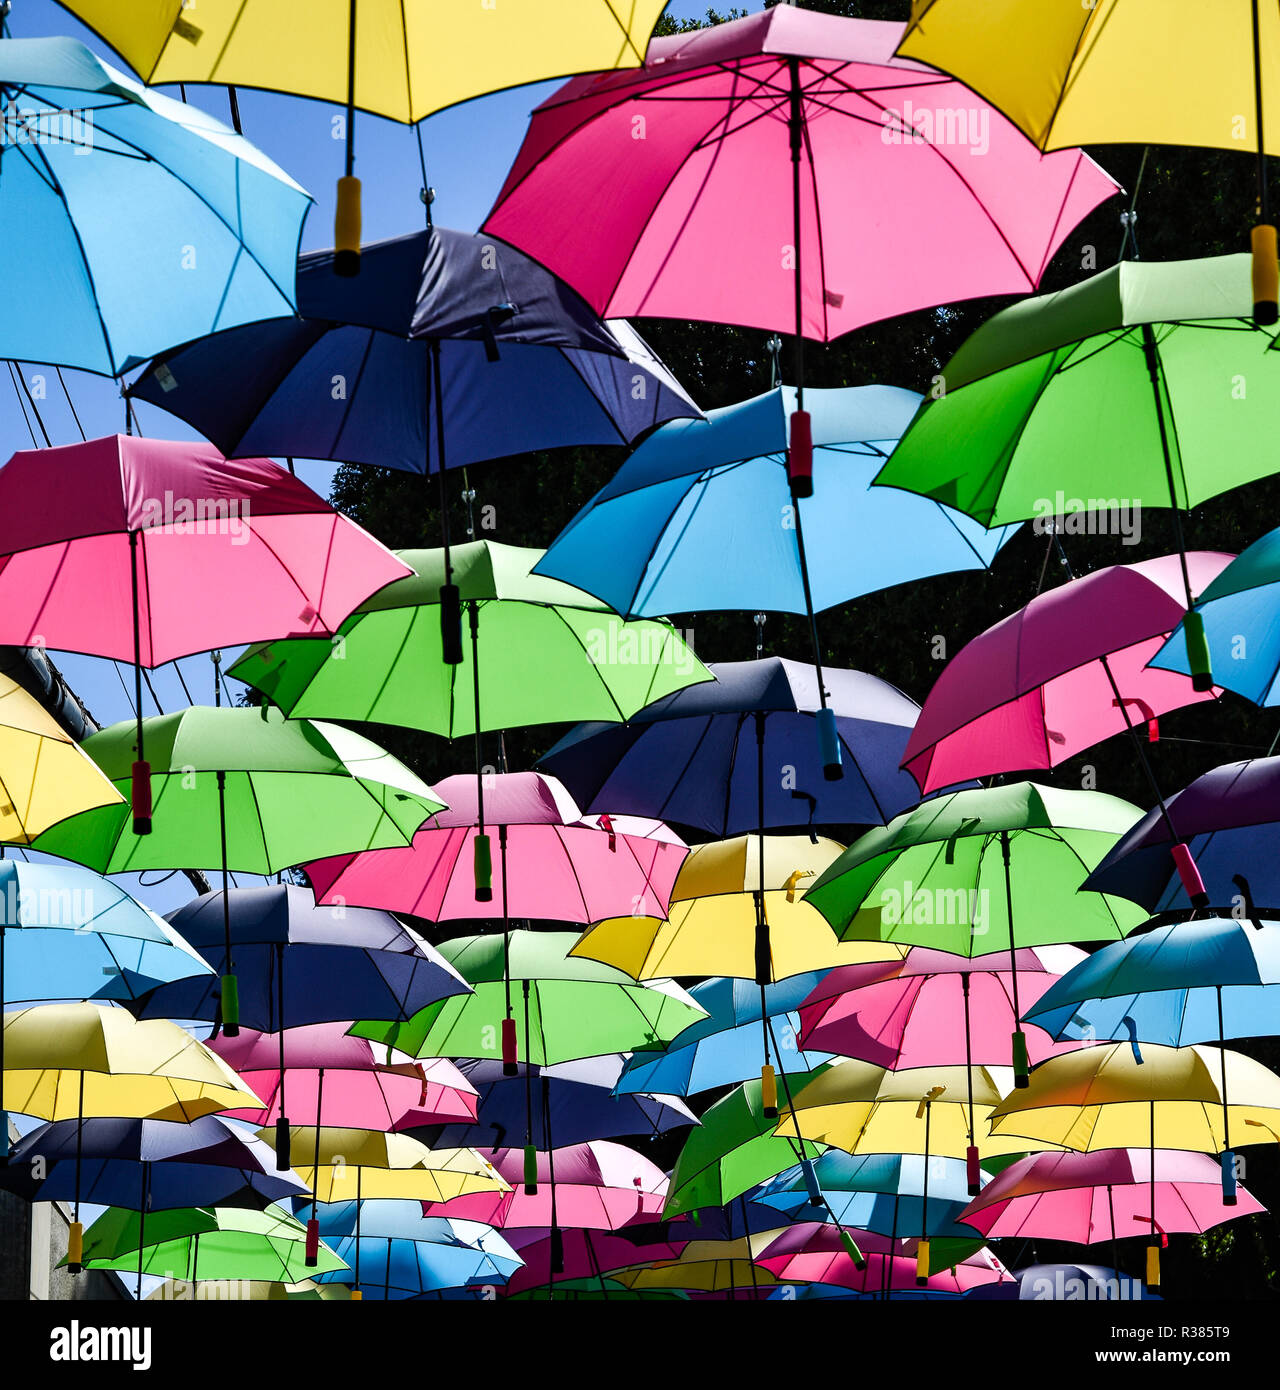 Floating Colorful umbrella cover - Stock Image